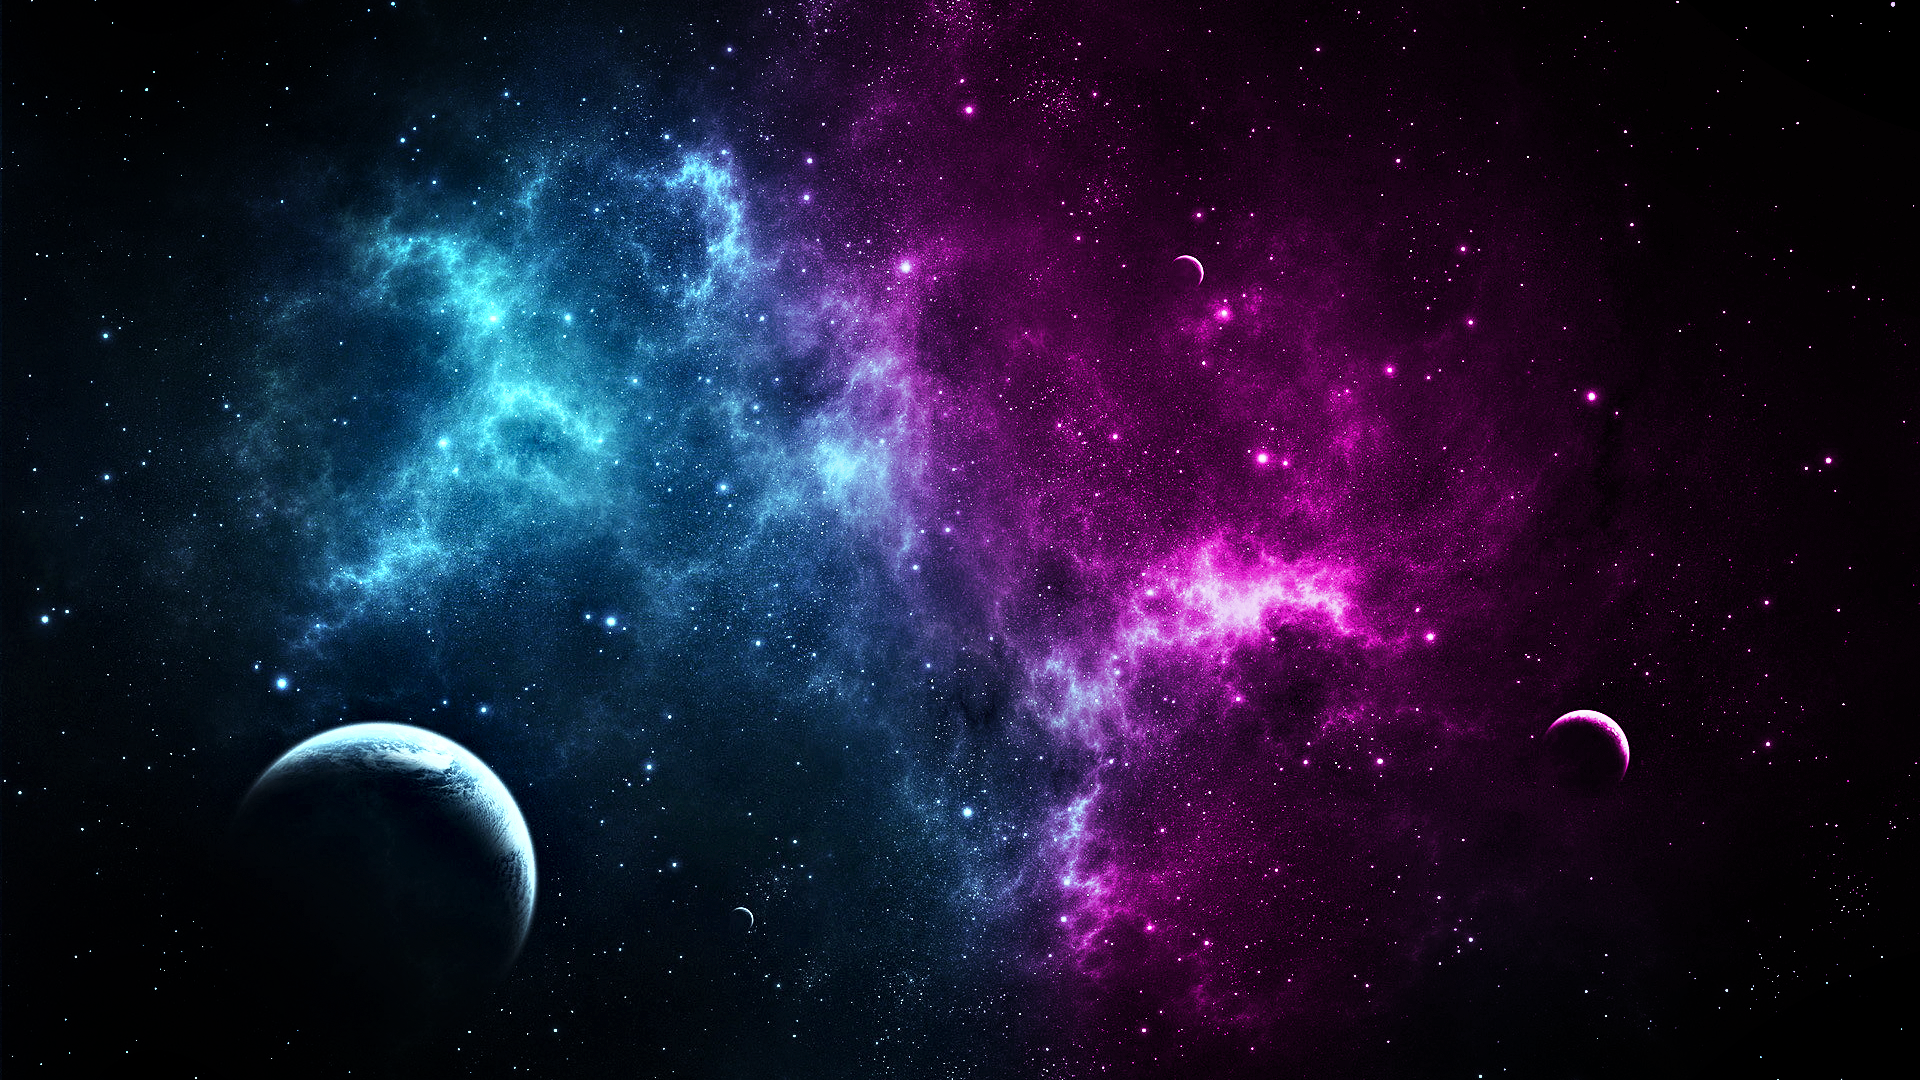 Space HD PNG - 120260